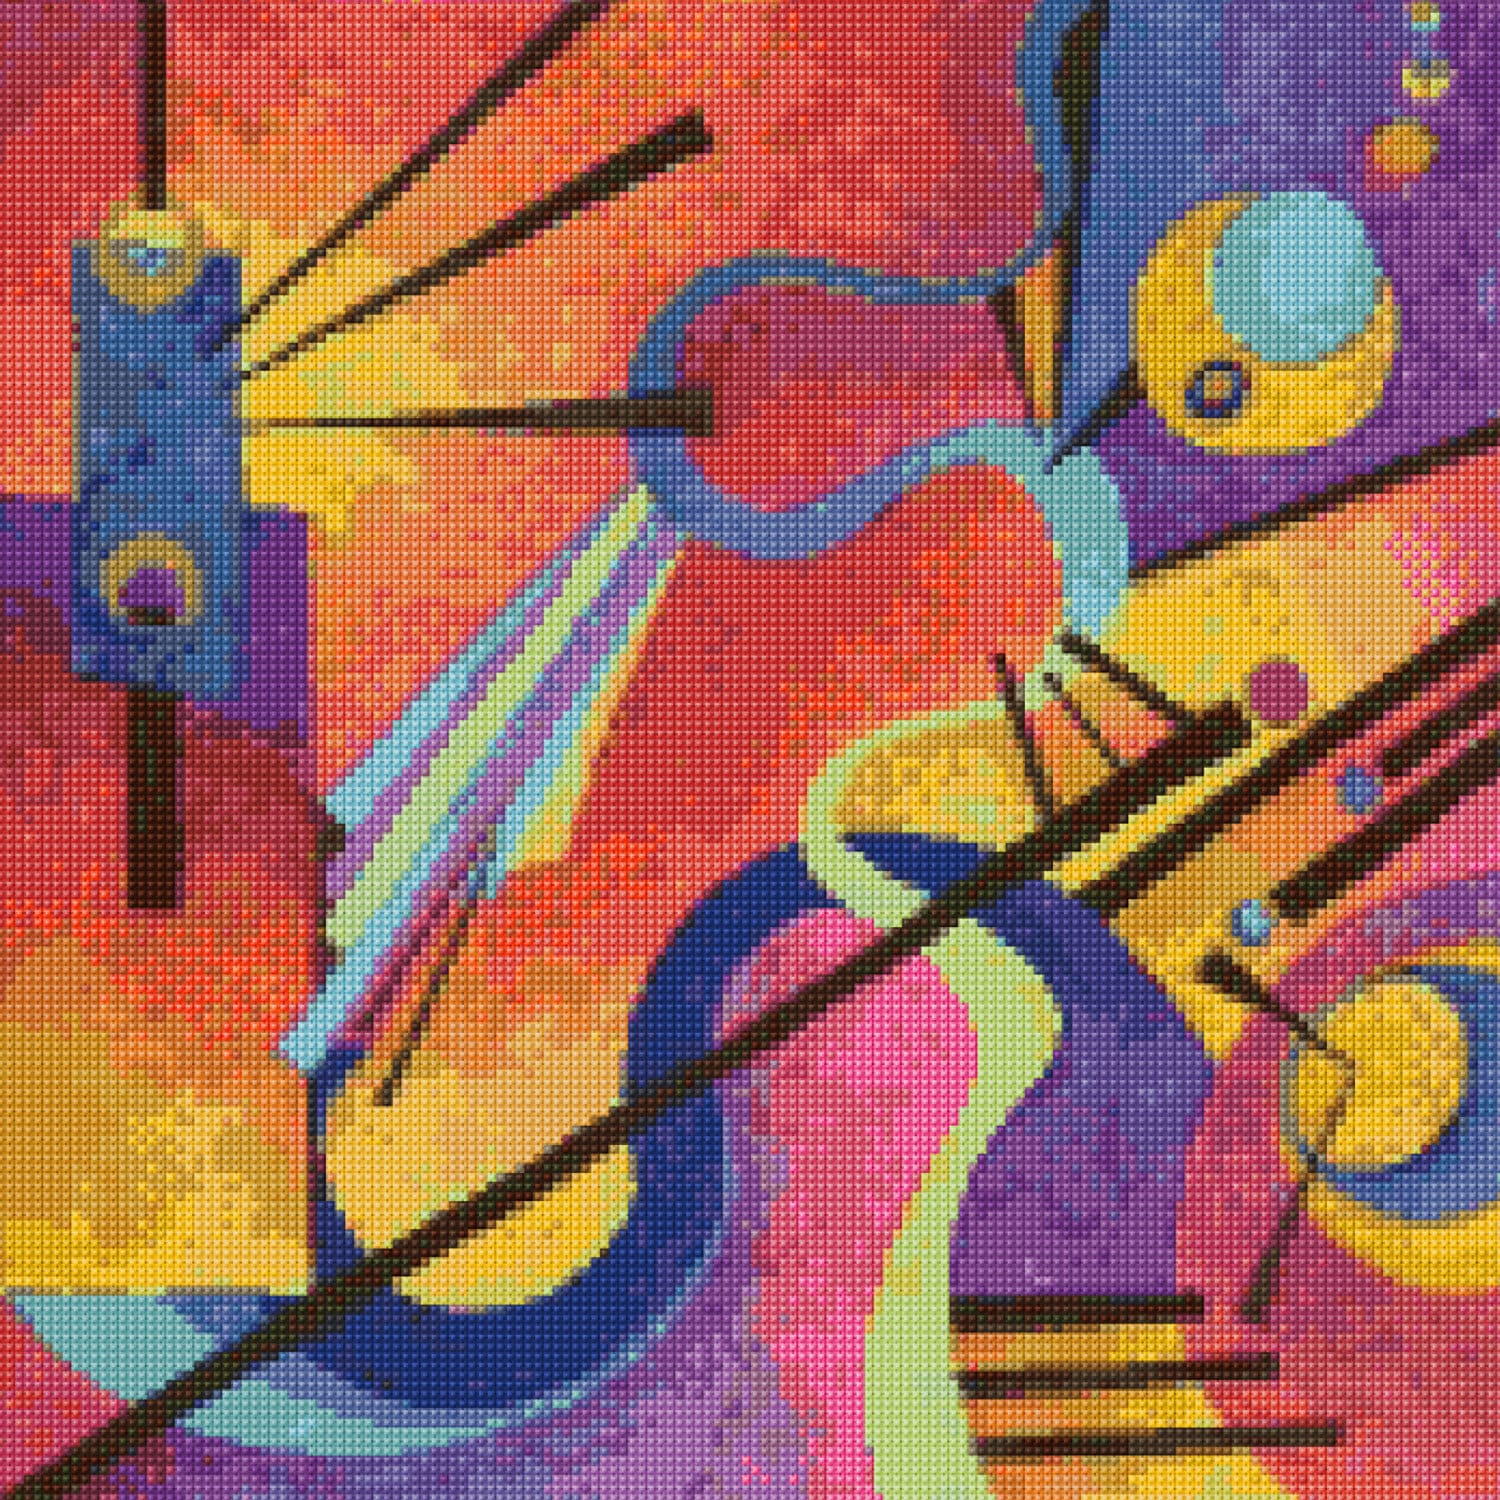 Kandinsky 2 abstract painting cross stitch pattern pdf zoom nvjuhfo Image collections